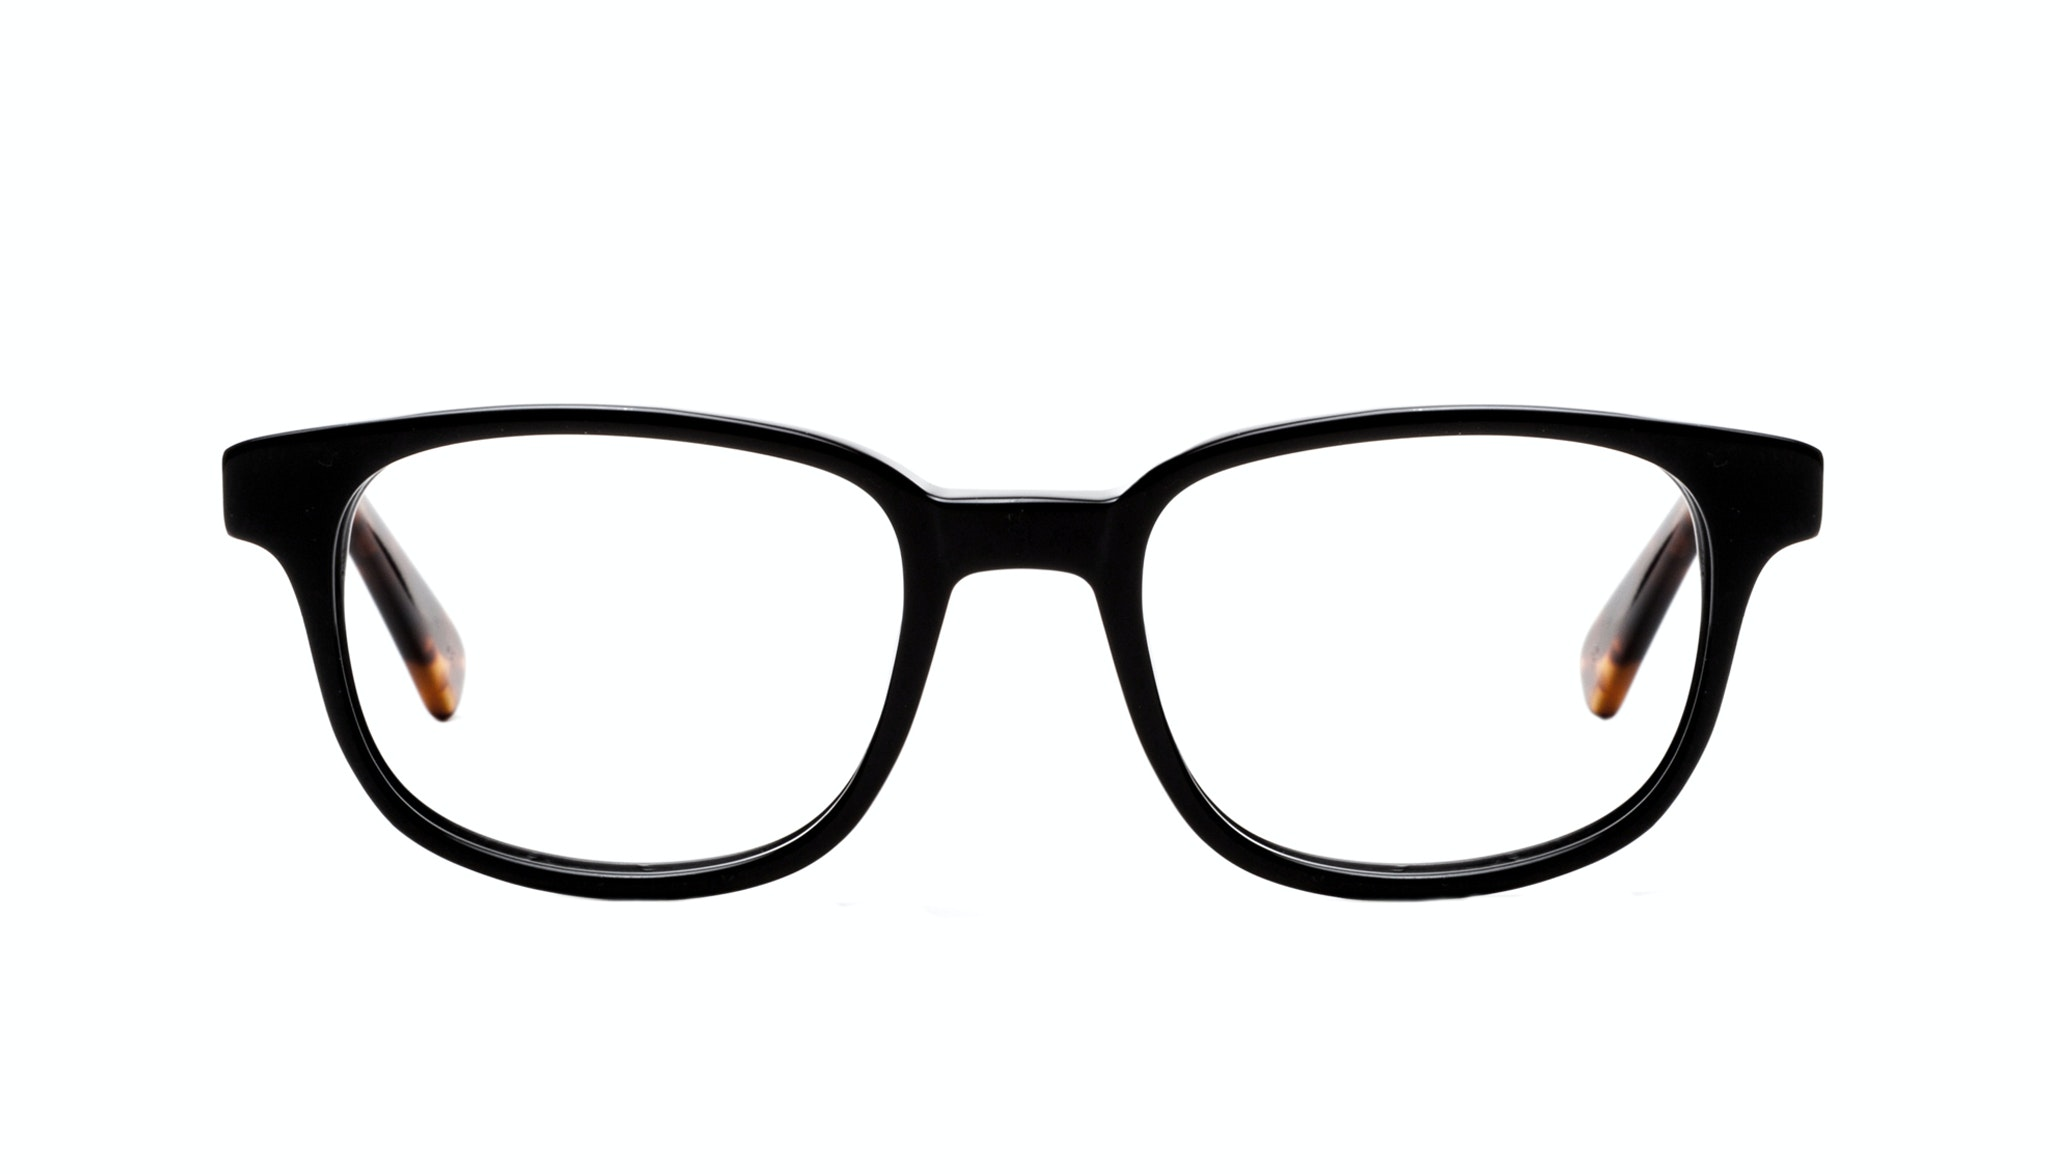 Affordable Fashion Glasses Rectangle Square Eyeglasses Men Women Magnetic Onyx Sepia Front